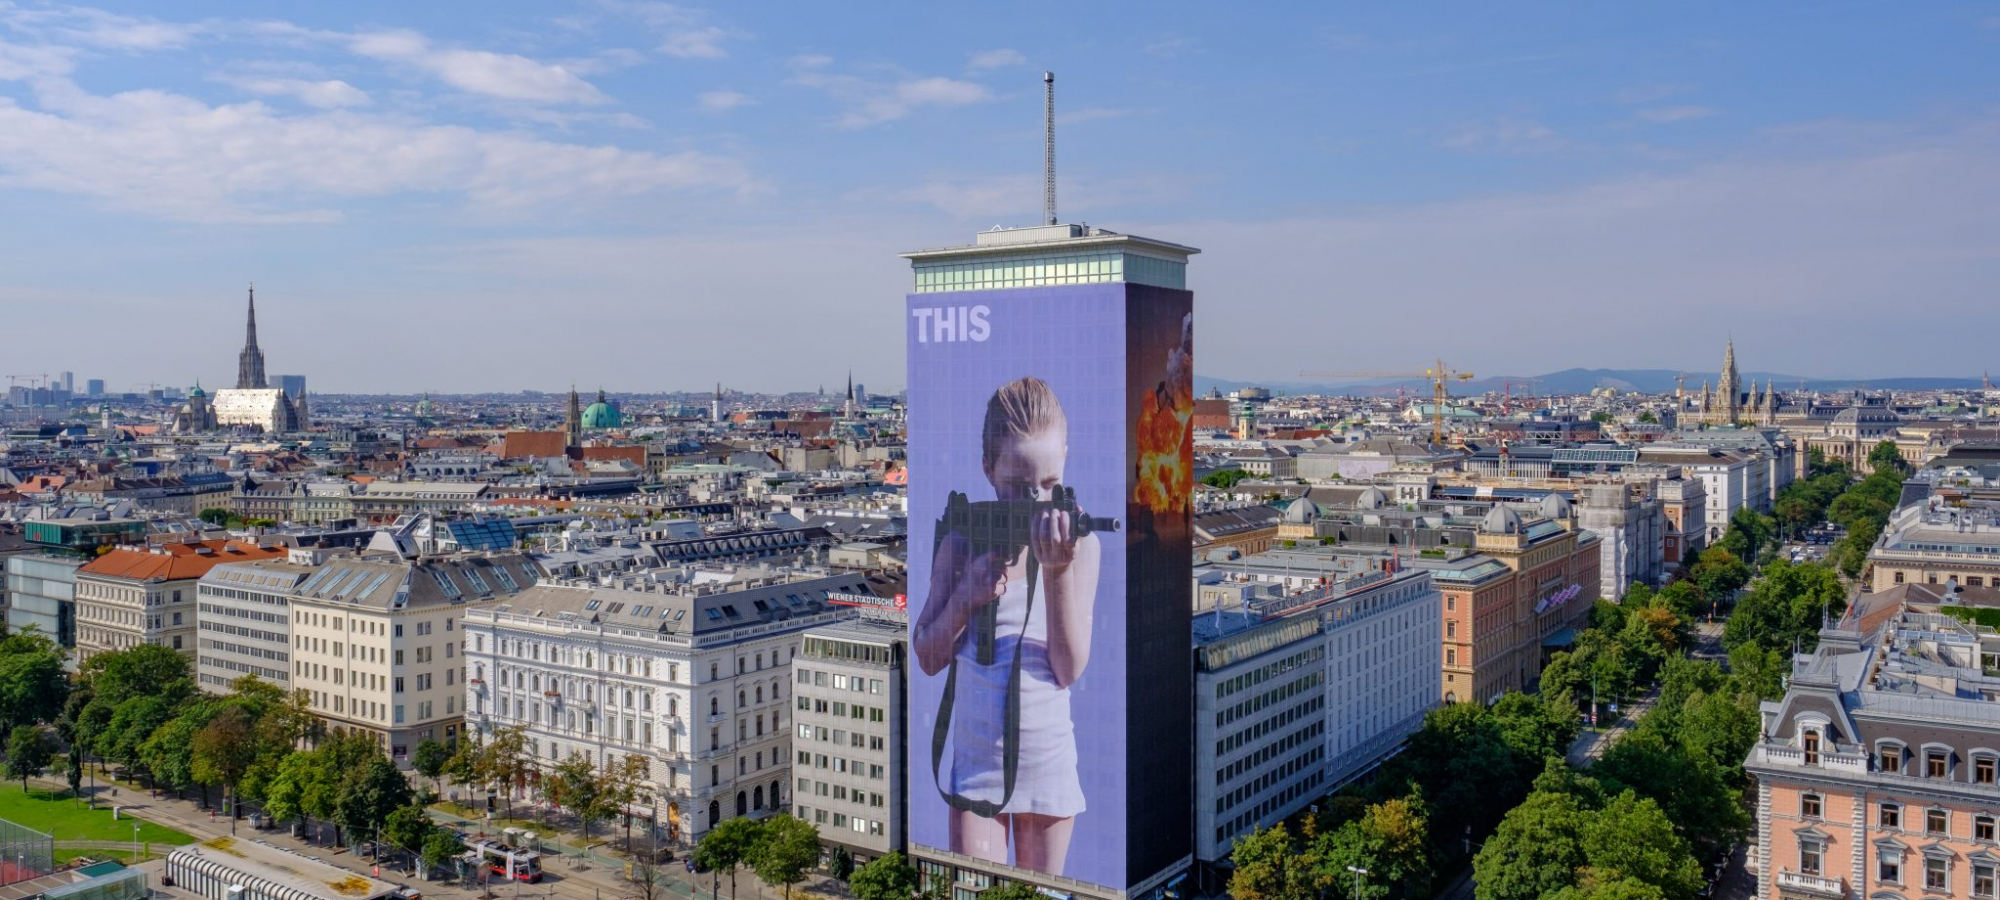 Artistic Wrapping of the Ringturm 2018